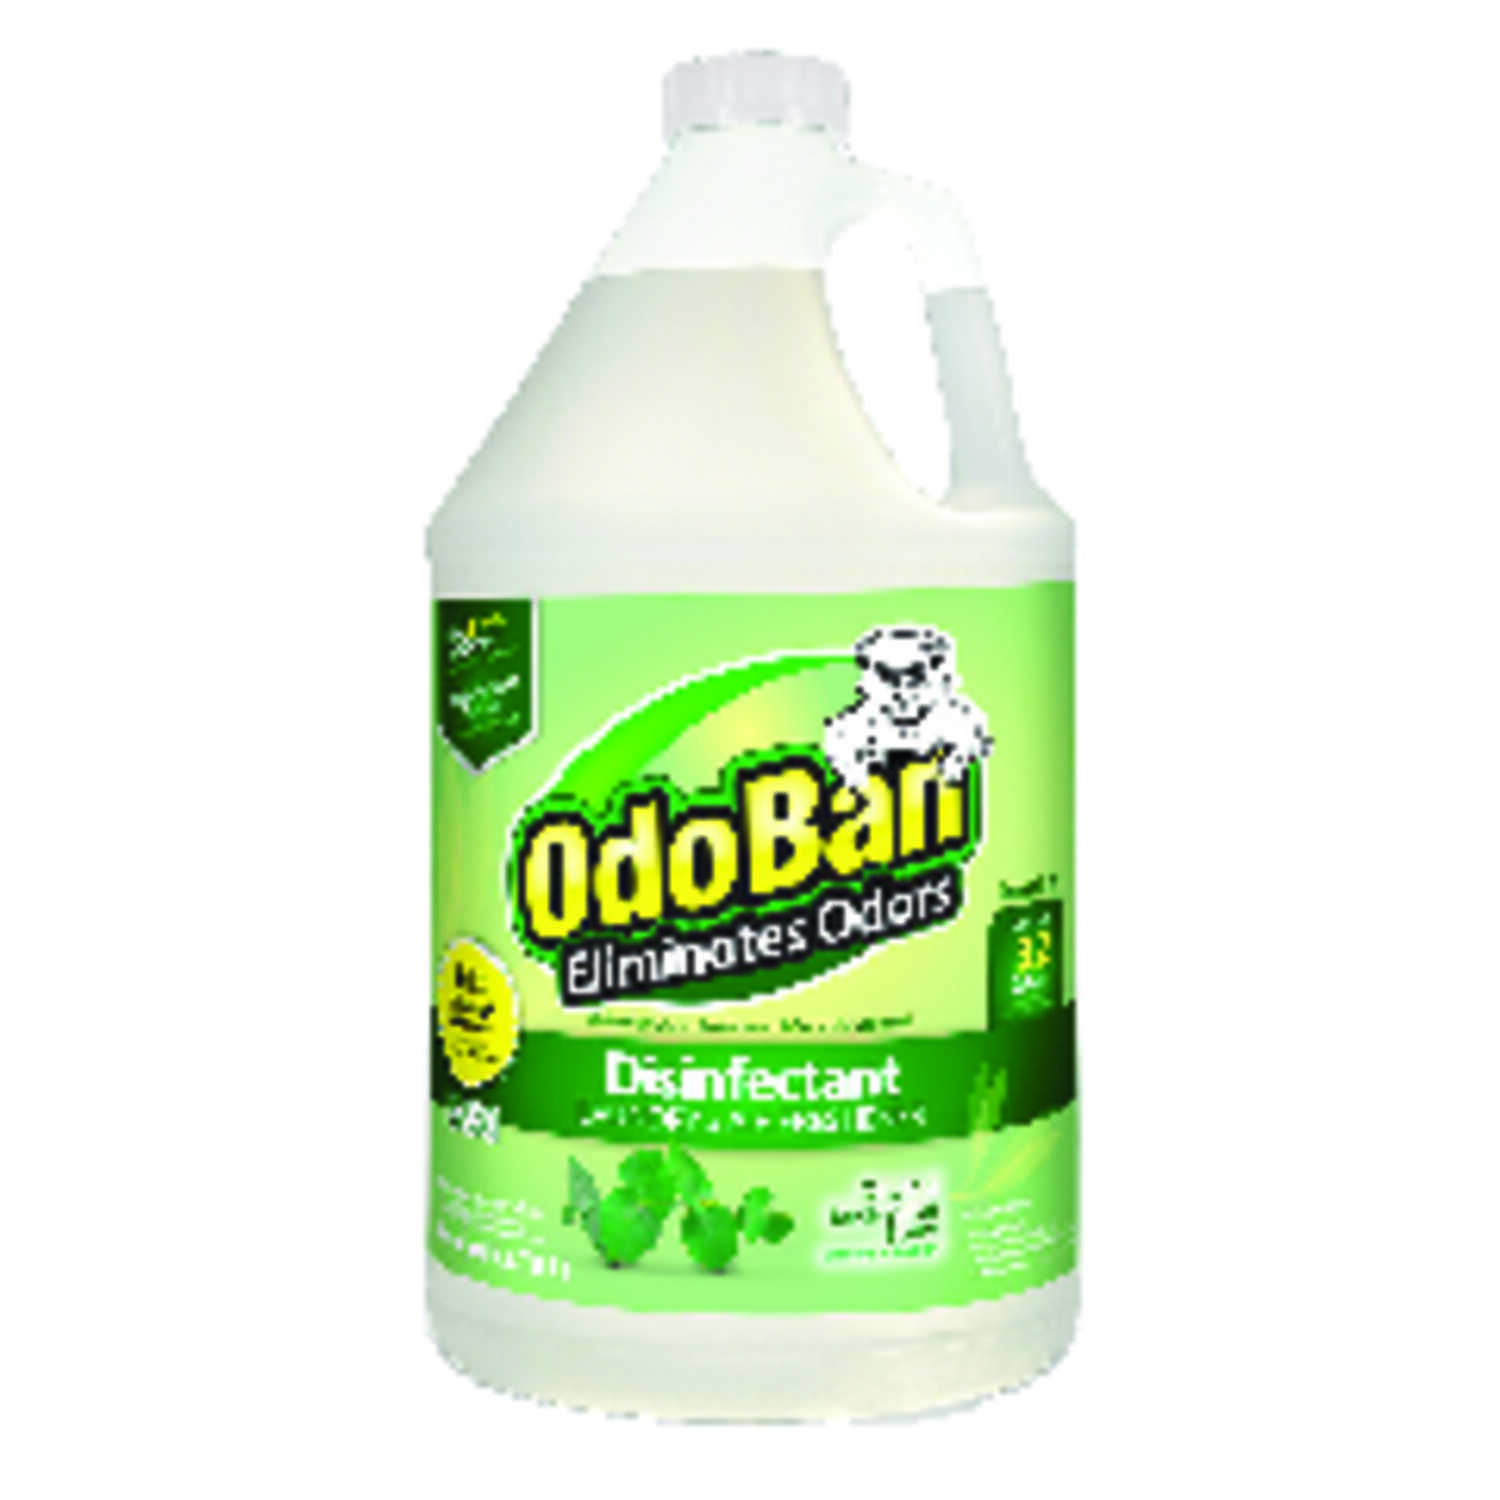 Odoban Eucalyptus Scent Odor Eliminator 1 Gal Liquid Ace Hardware Hobby Diy Projects And Circuits Delabs